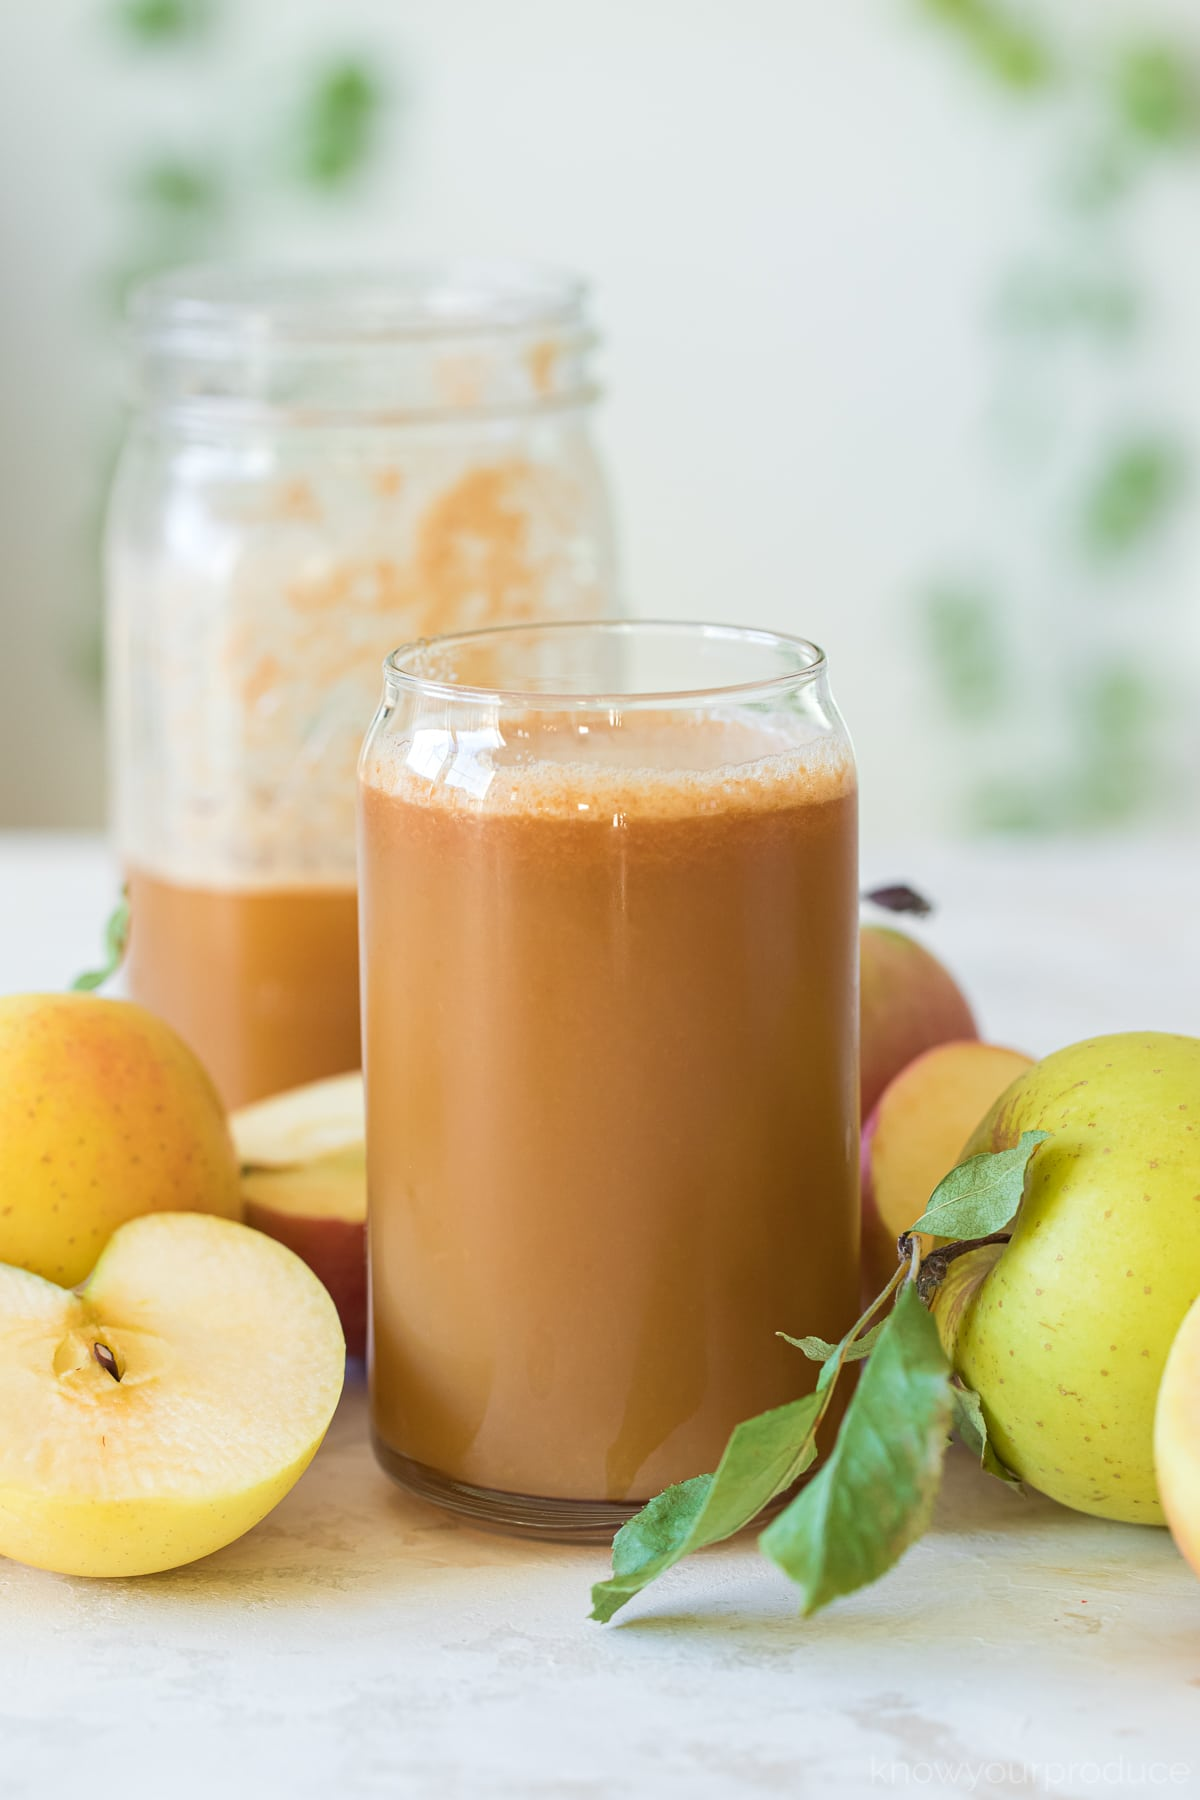 homemade apple cider in a glass cup with apples around it and half filled mason jar behind it